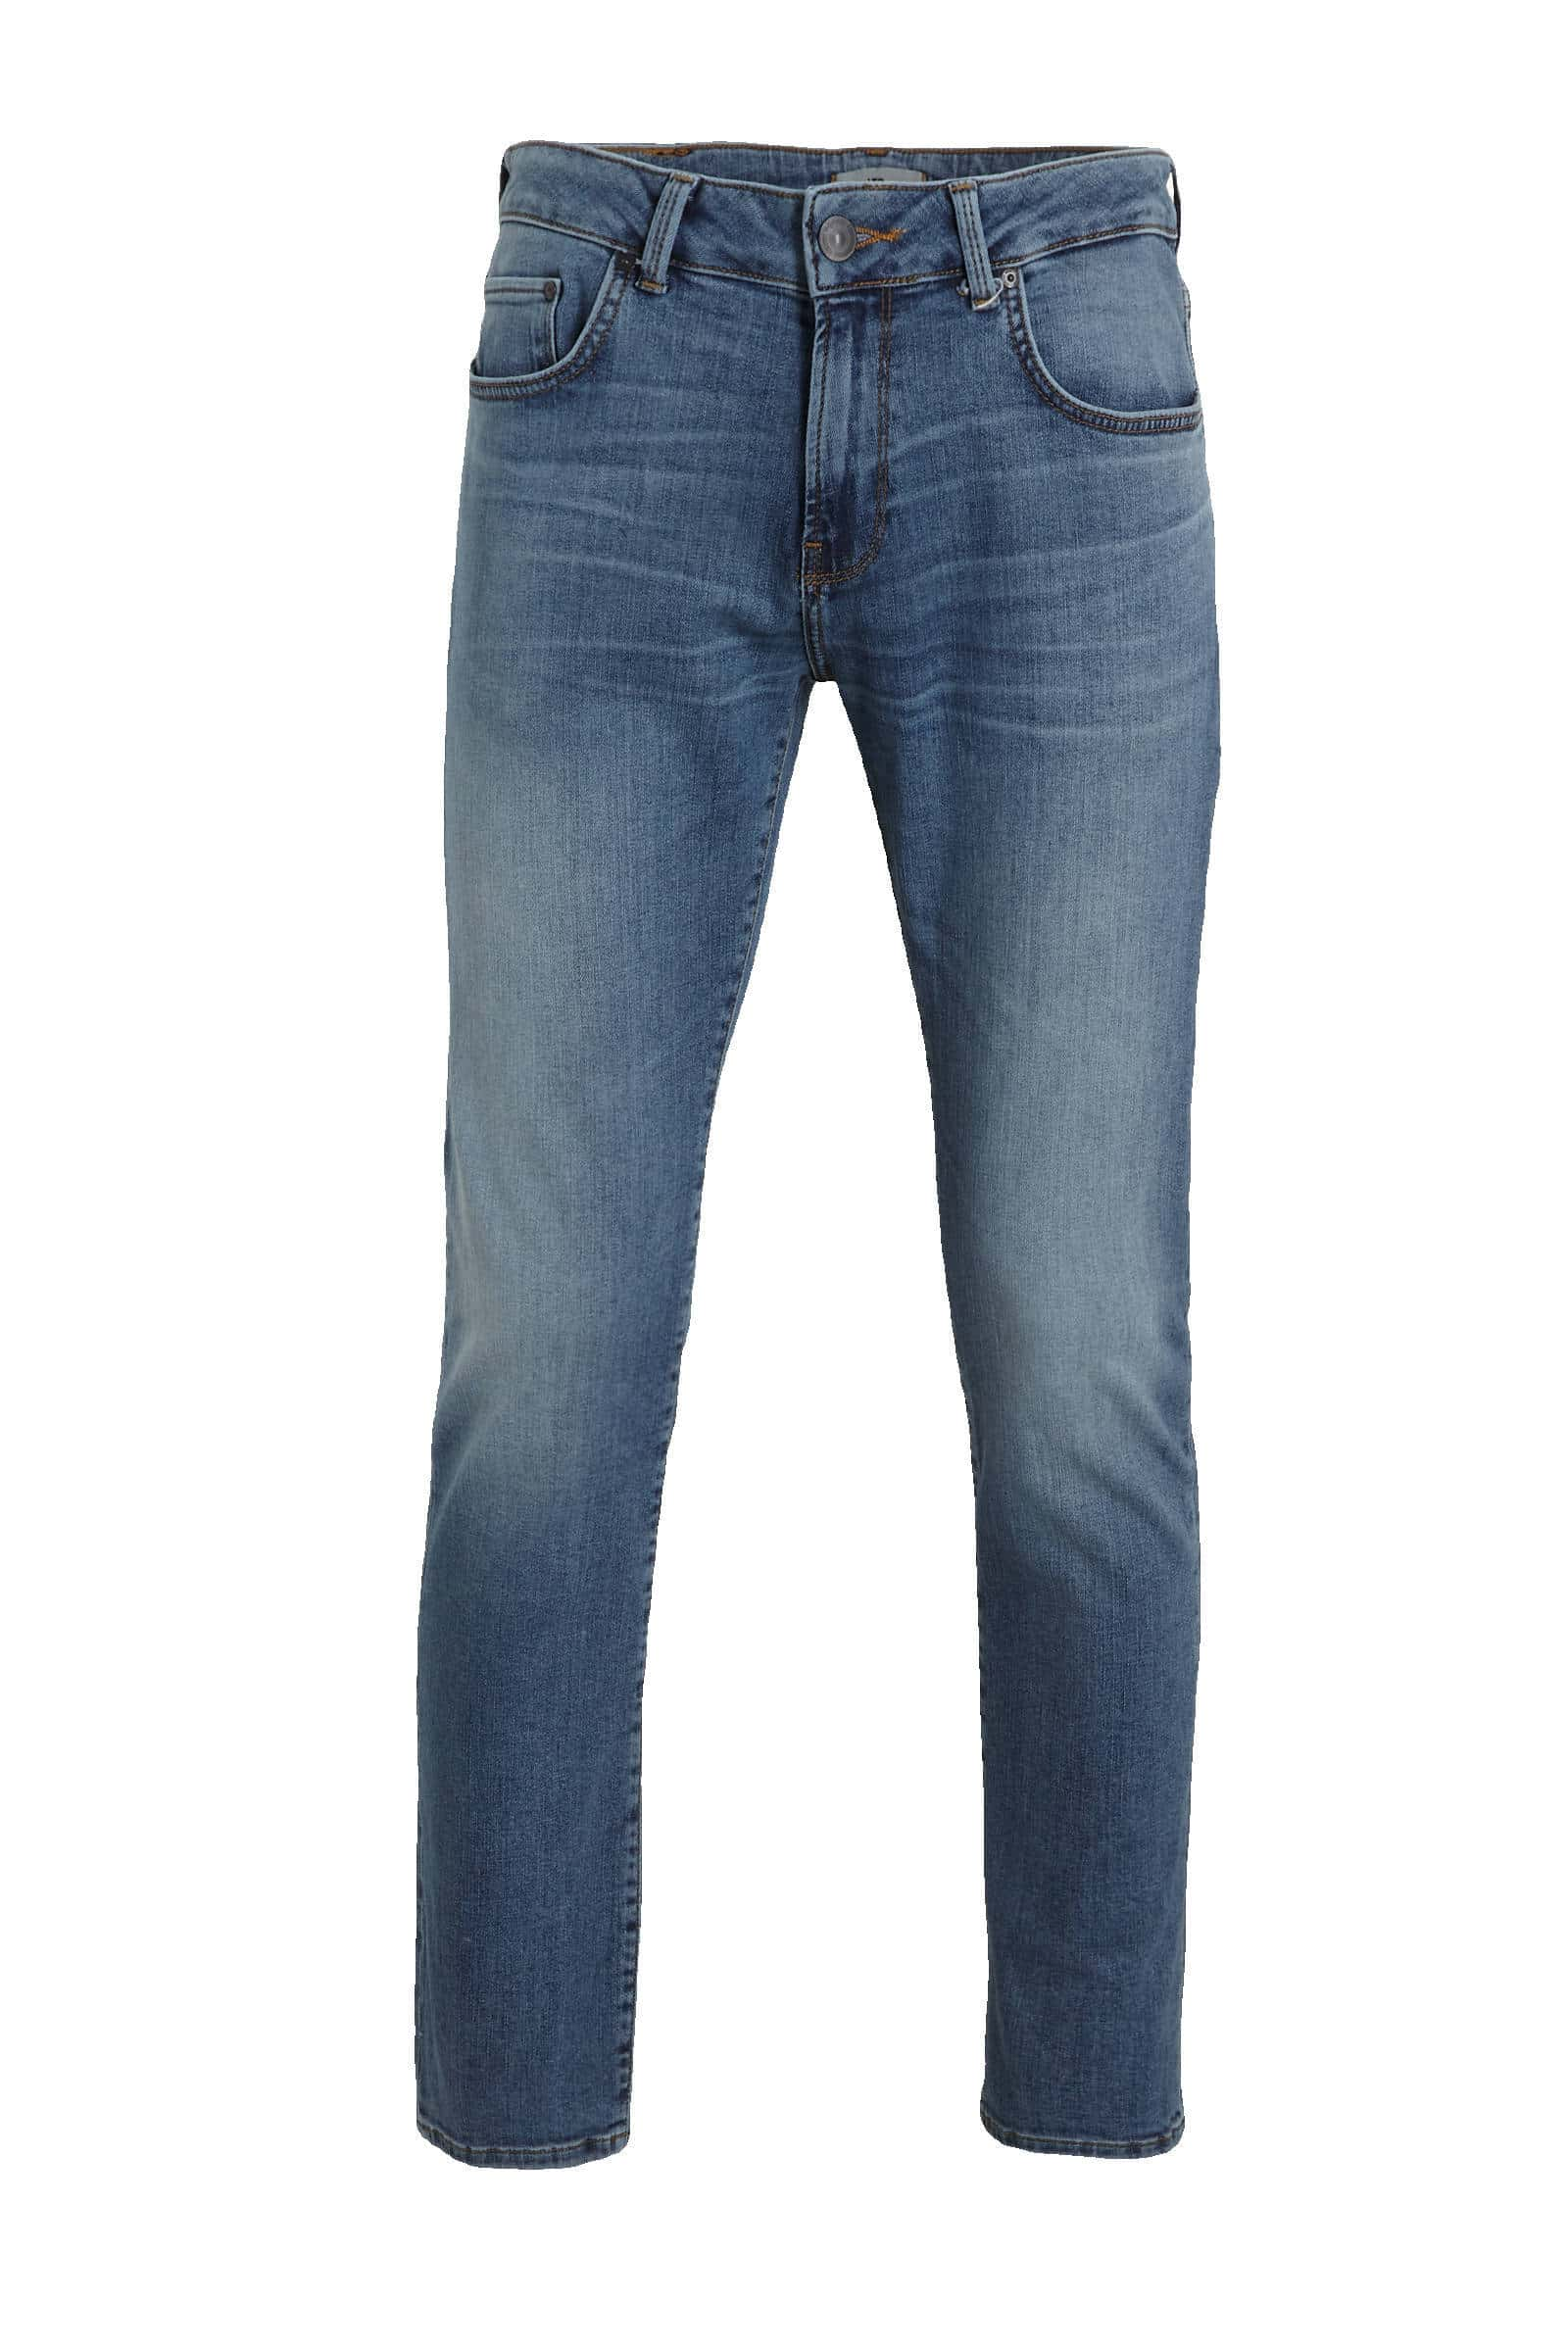 Ltb HOLLYWOOD – ALTAIR WASH